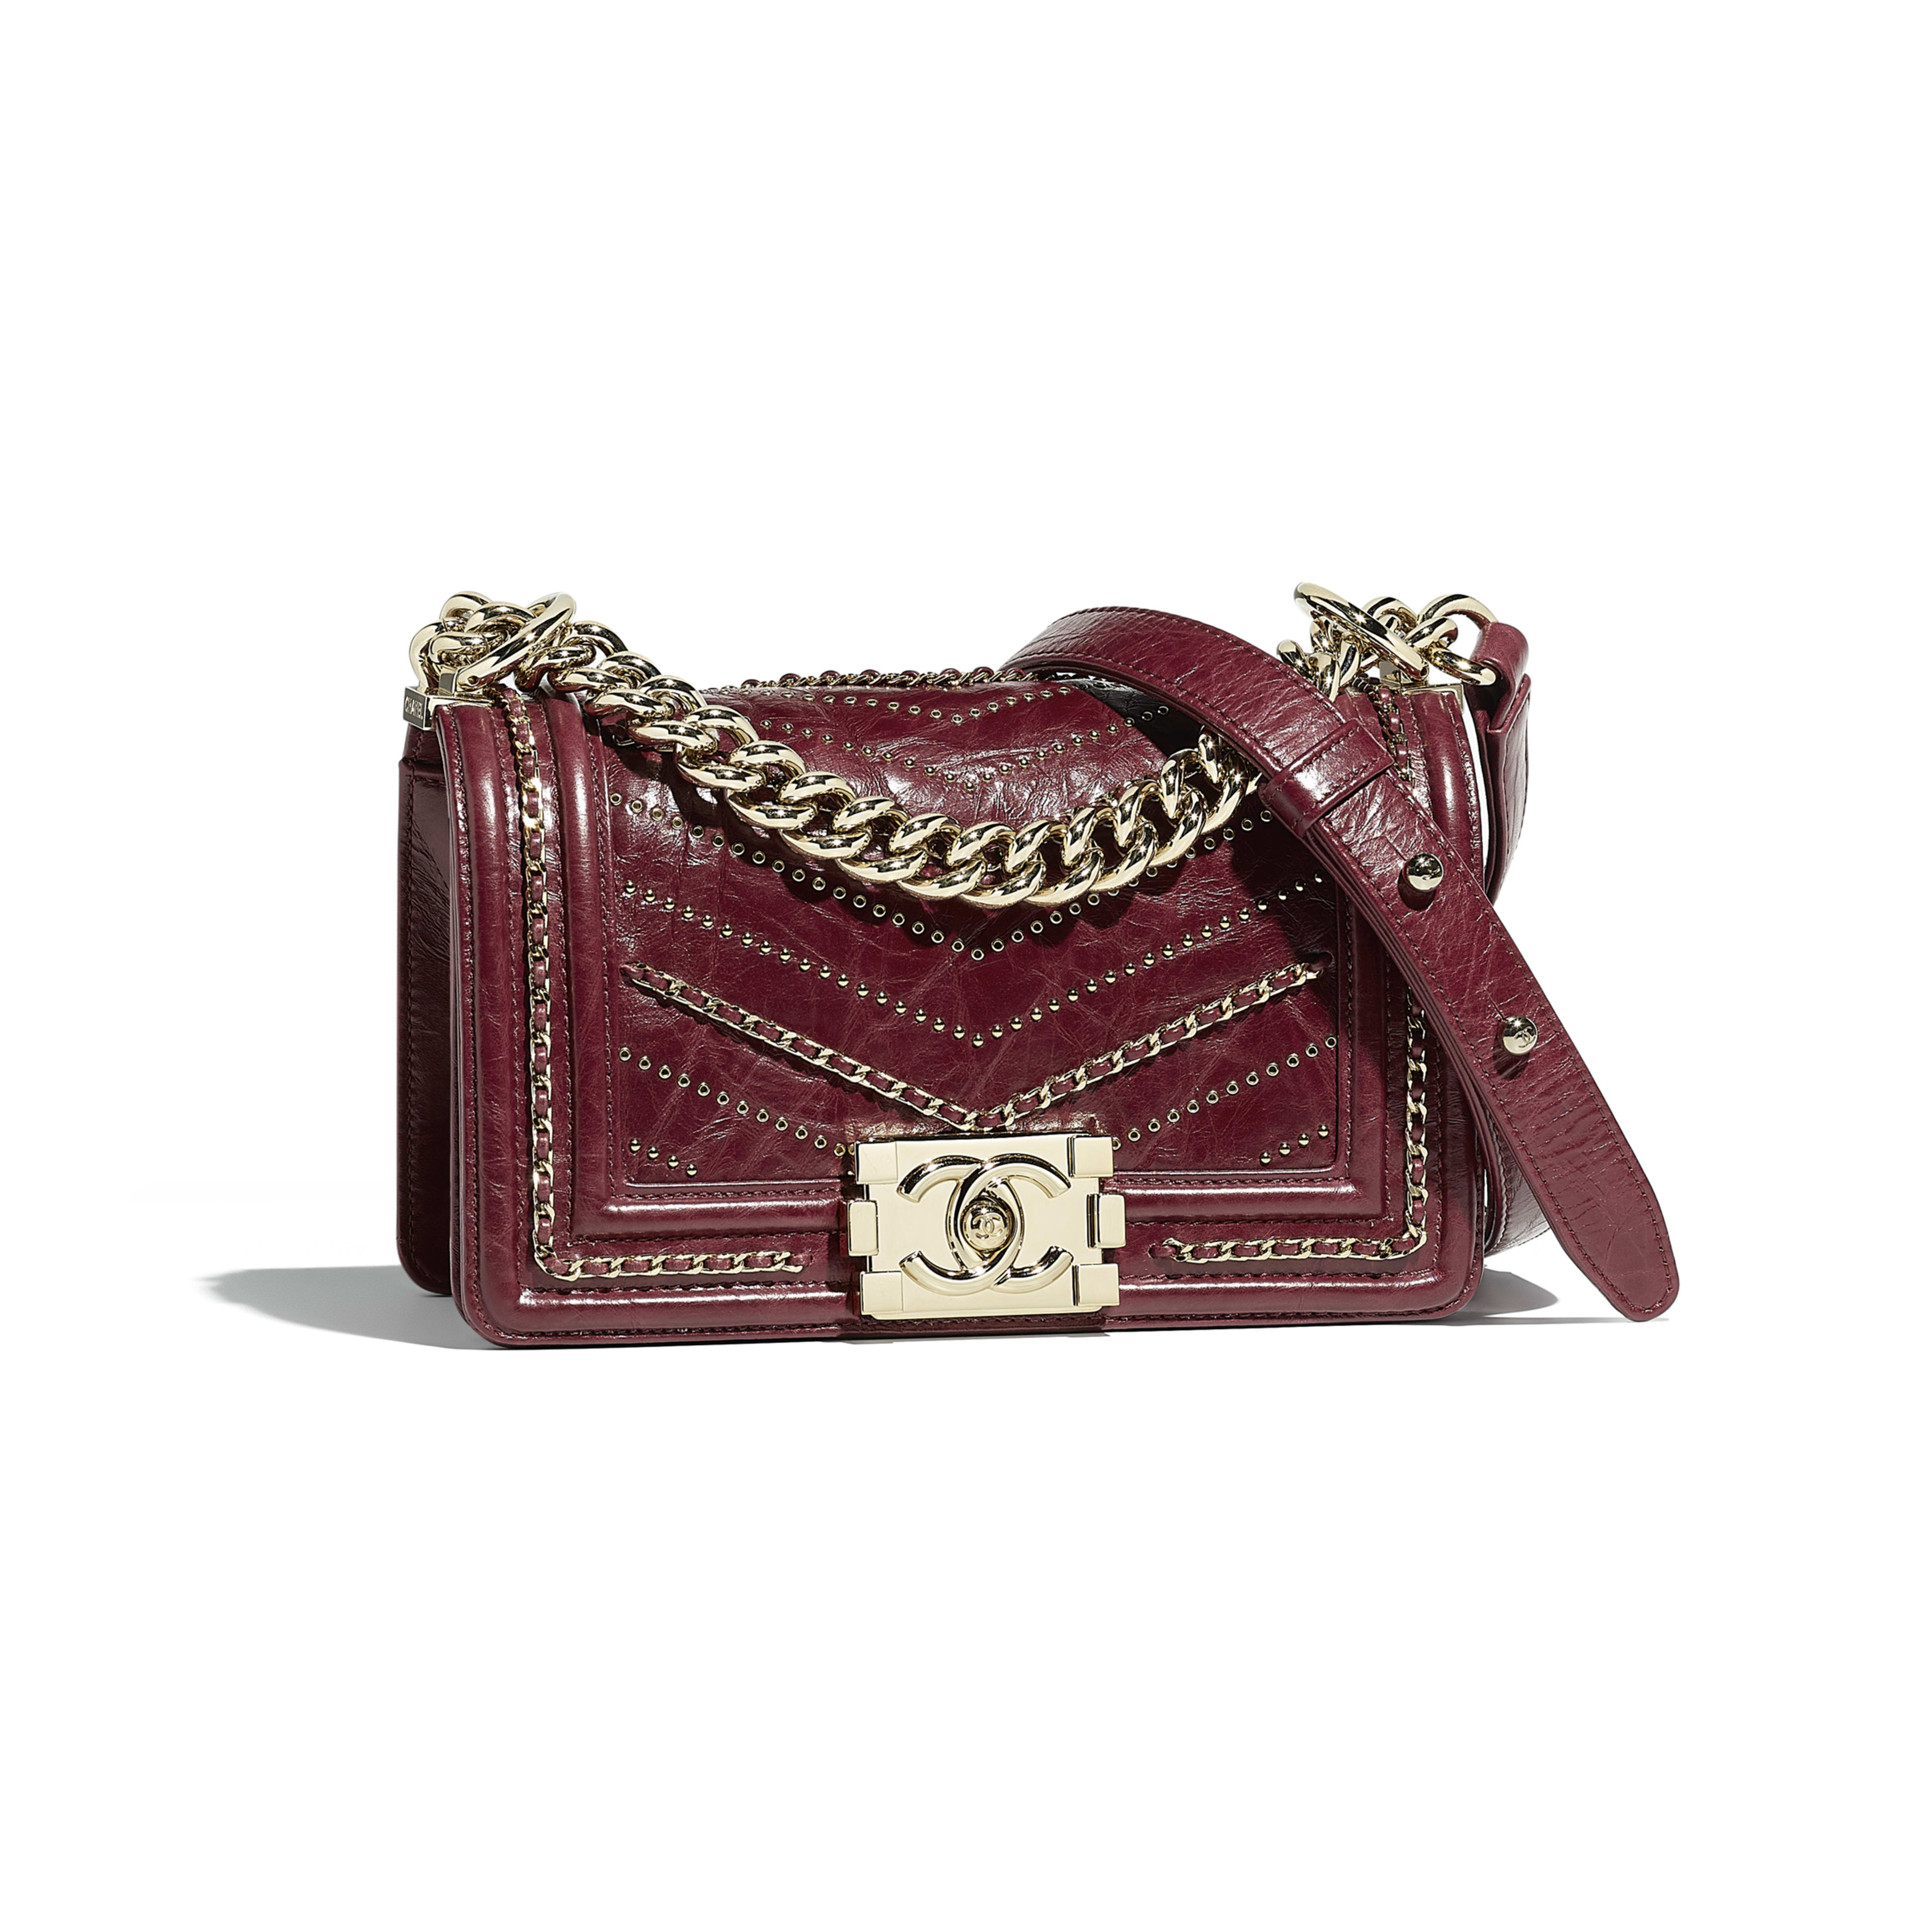 Small BOY CHANEL Handbag - Red - Crumpled Calfskin & Gold-Tone Metal - Default view - see full sized version